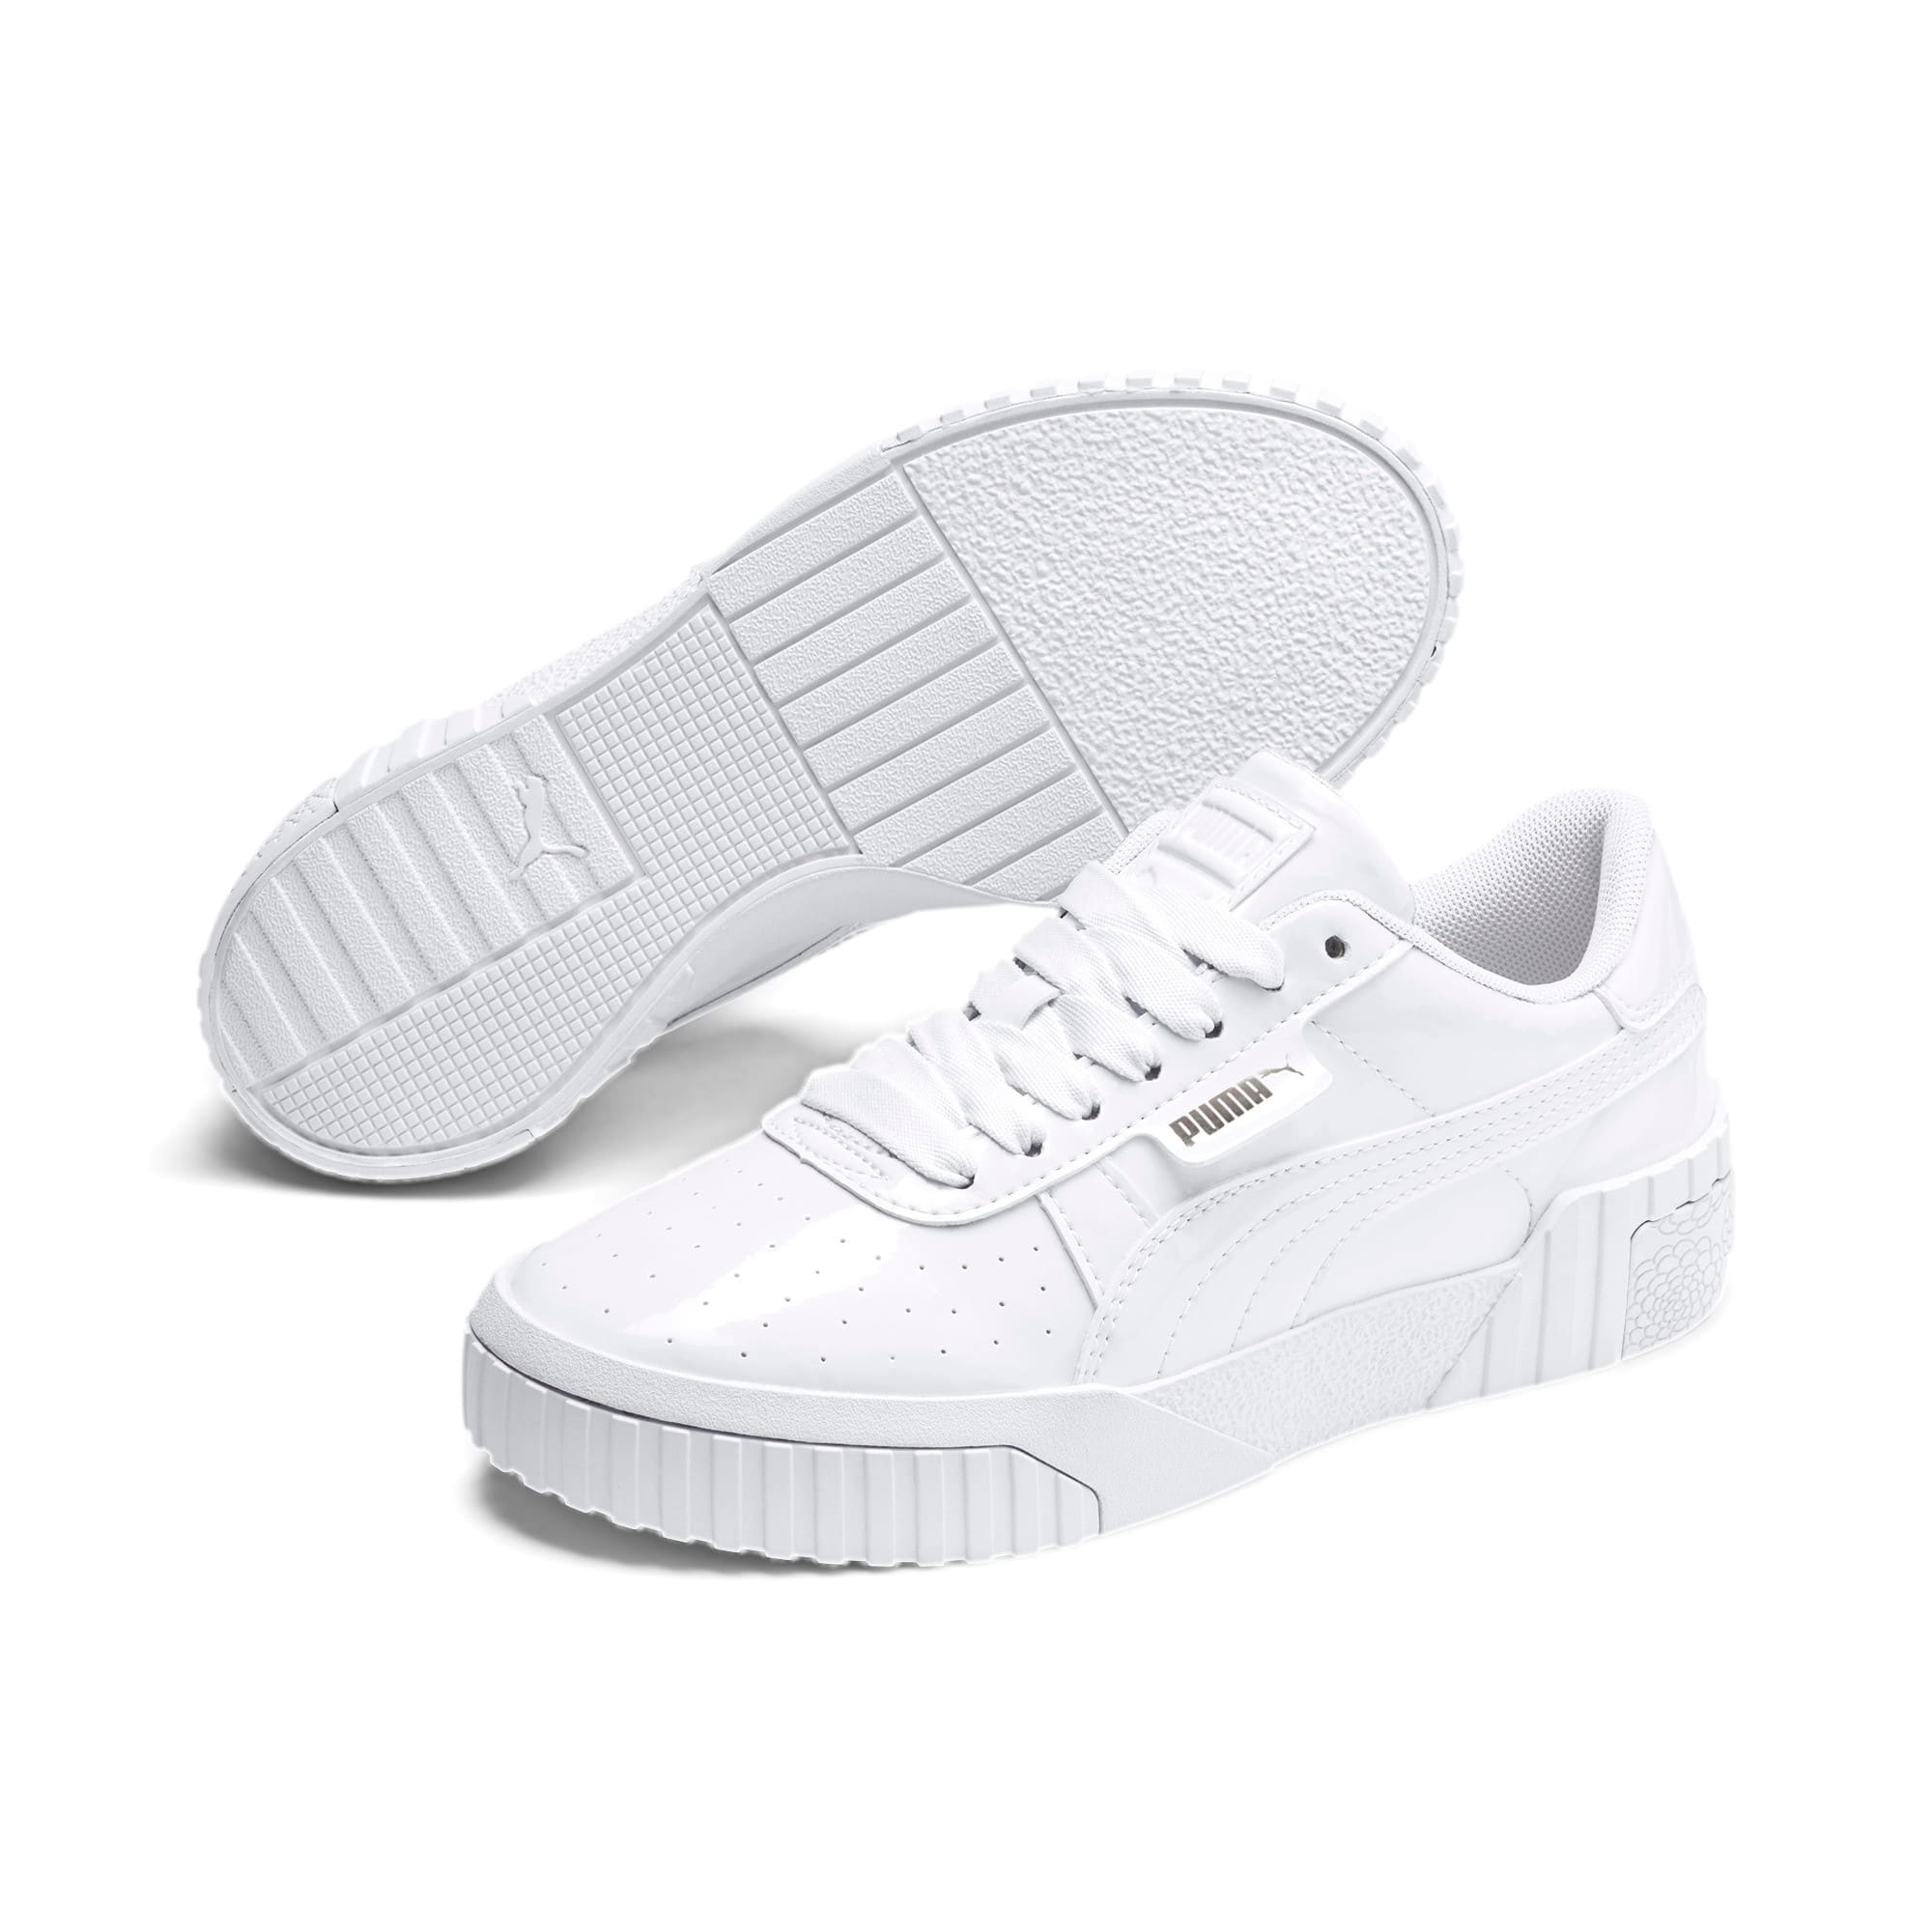 Thumbnail 2 of Basket Cali Patent Youth, Puma White-Puma White, medium